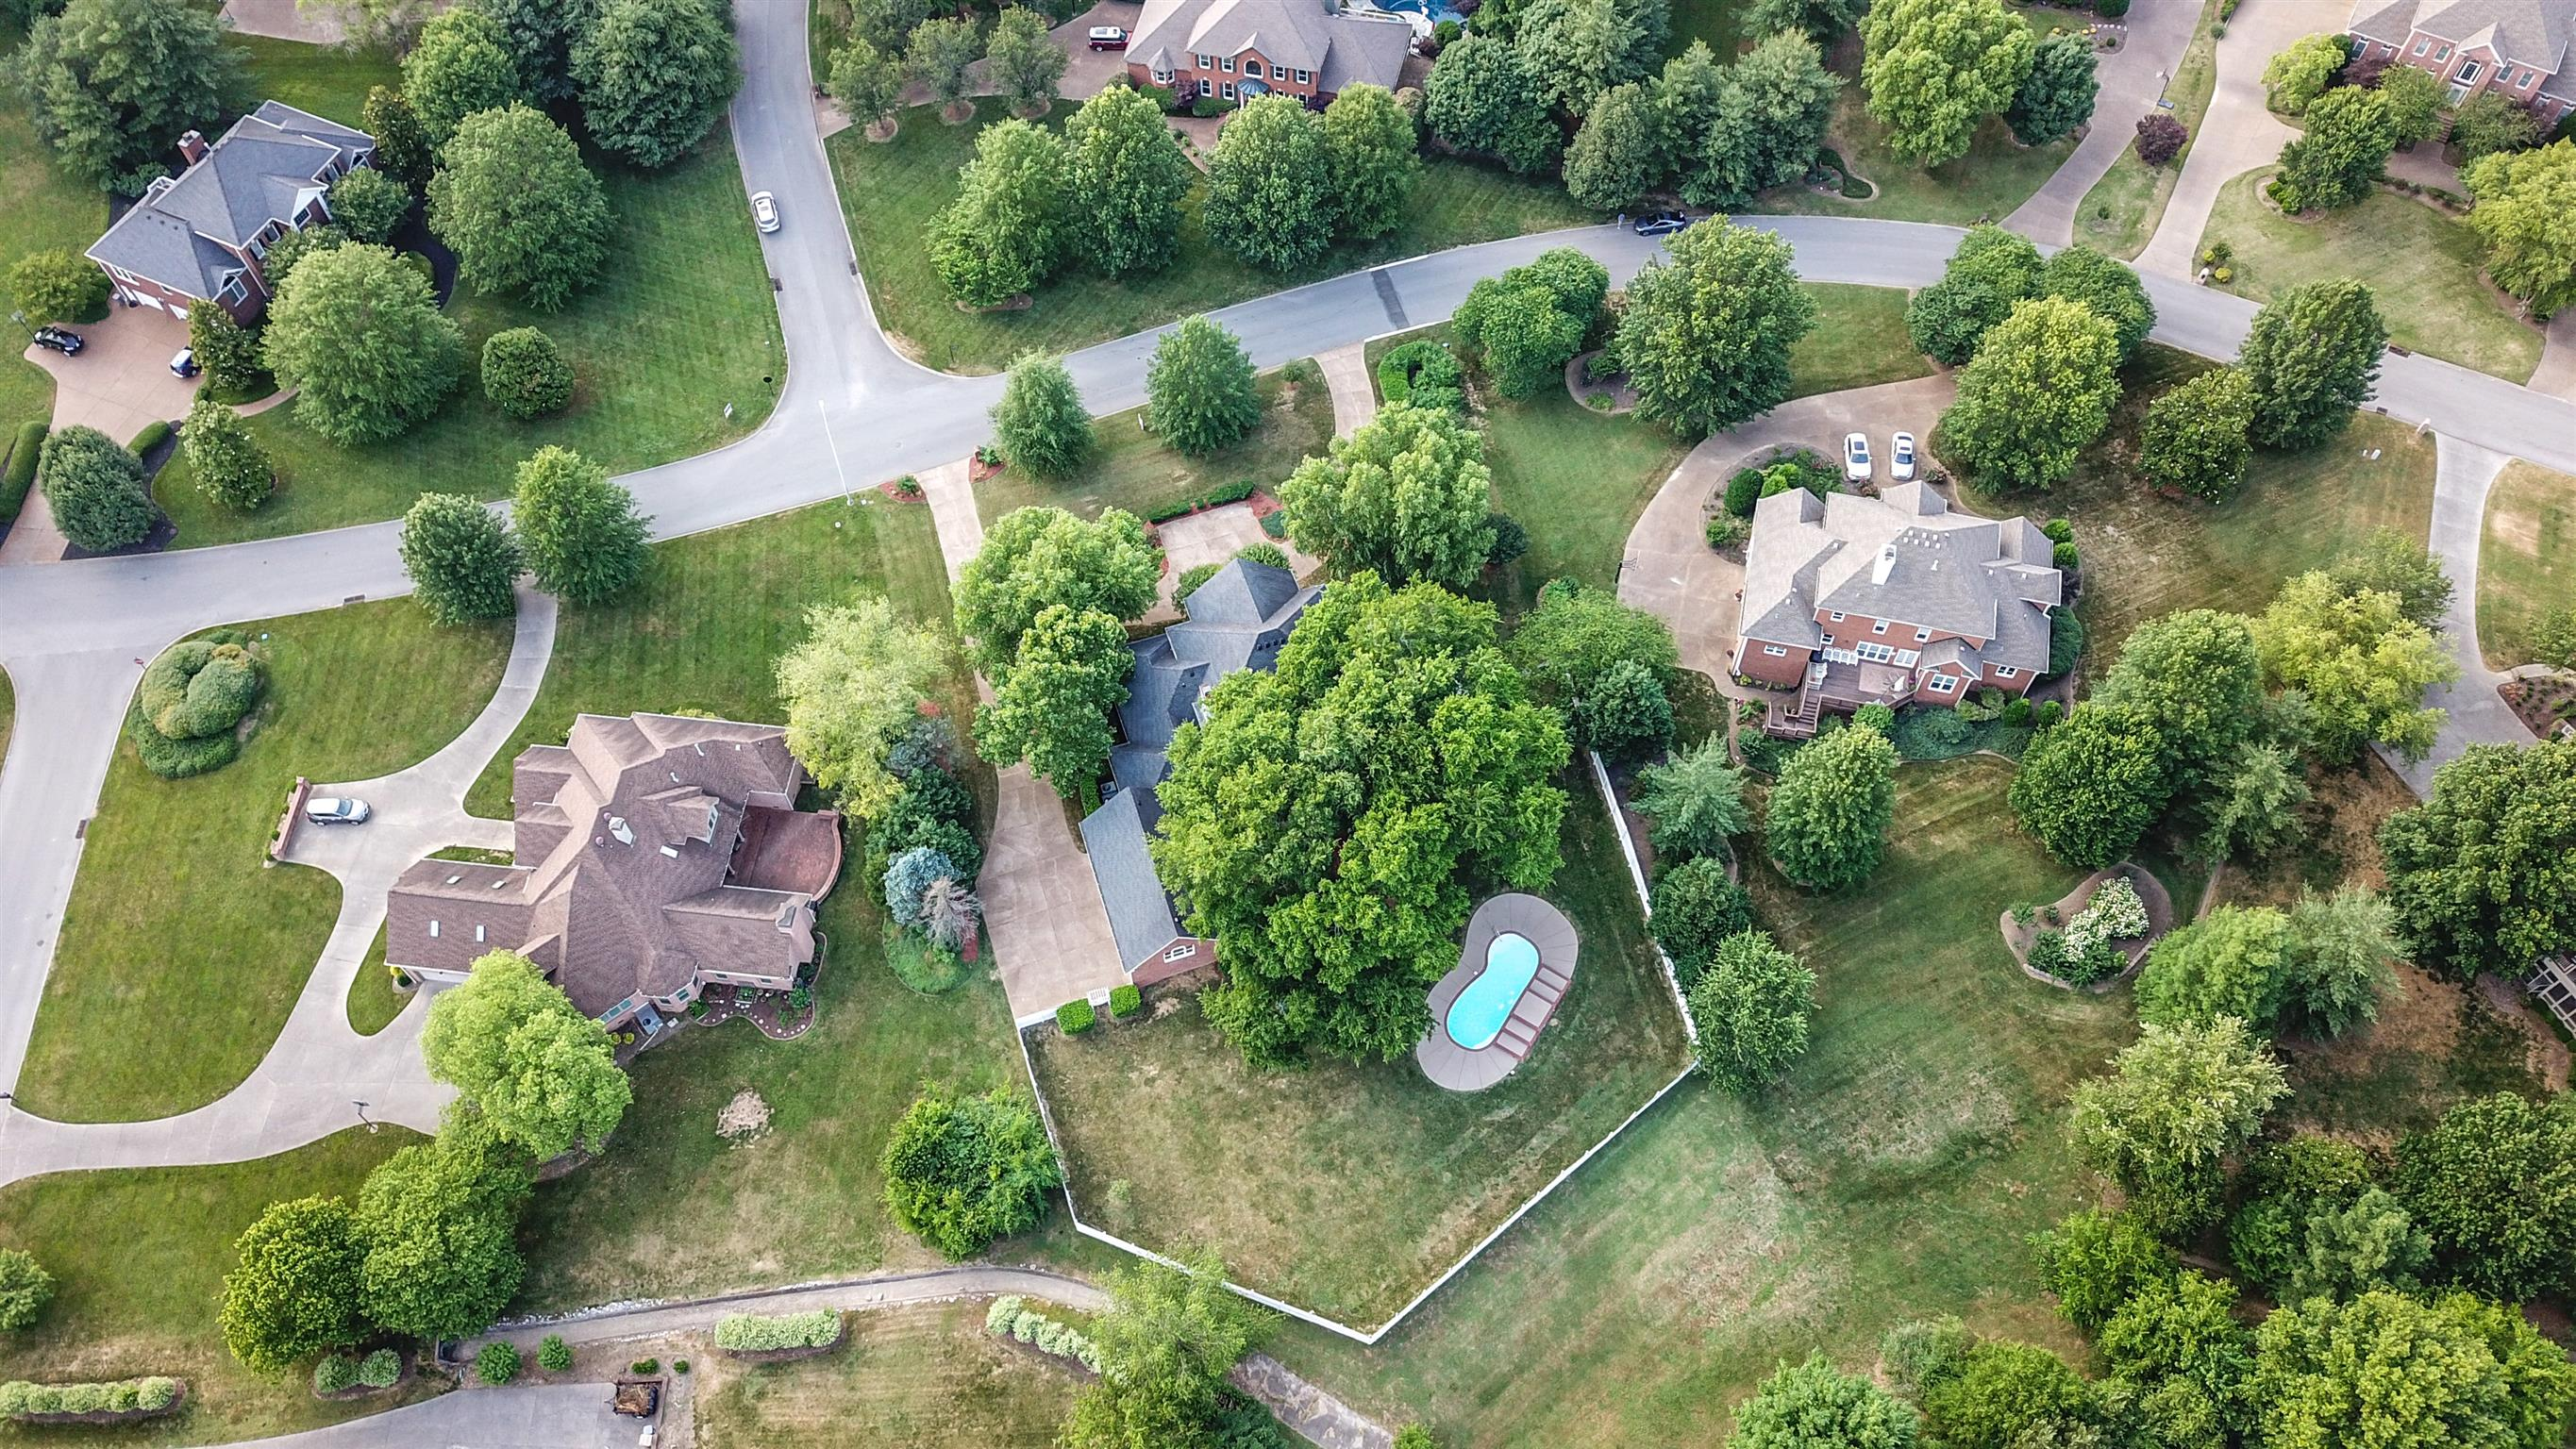 9272 Hunterboro Dr, Brentwood, TN 37027 - Brentwood, TN real estate listing